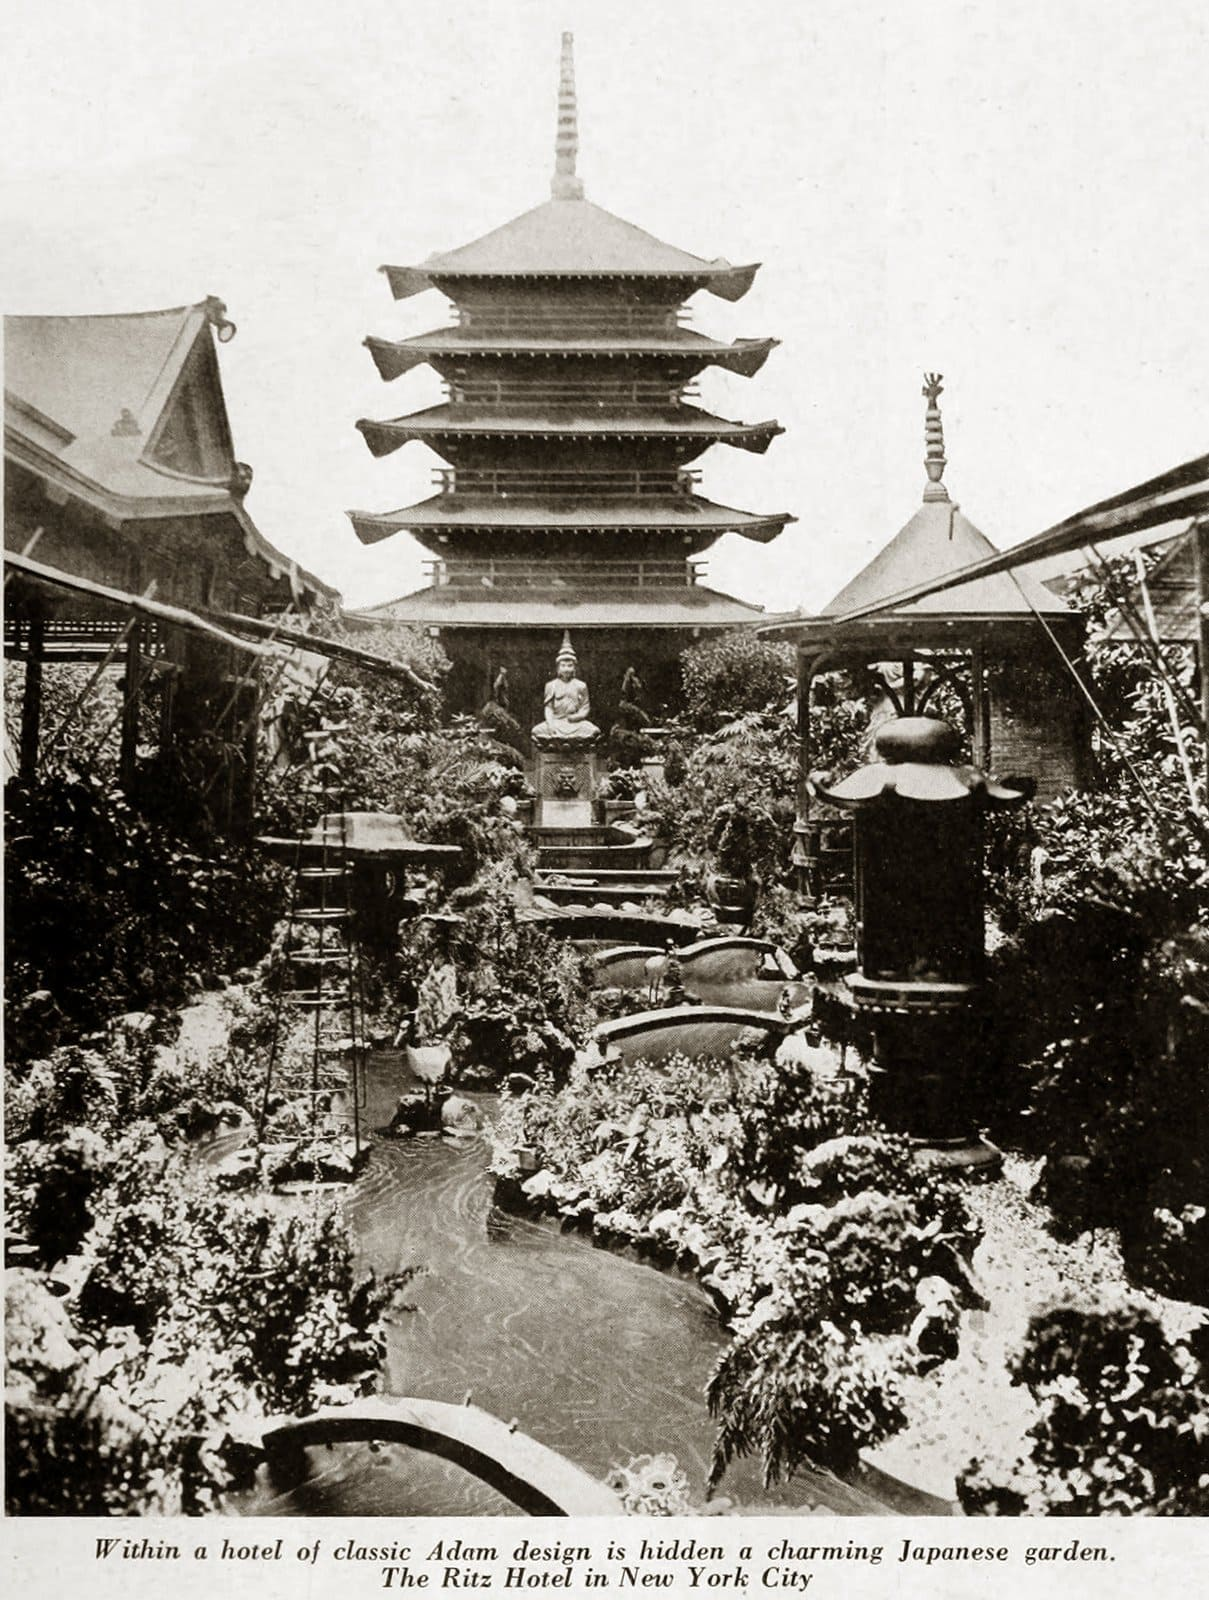 Japanese Garden at the old Ritz-Carlton Hotel in New York (1924)